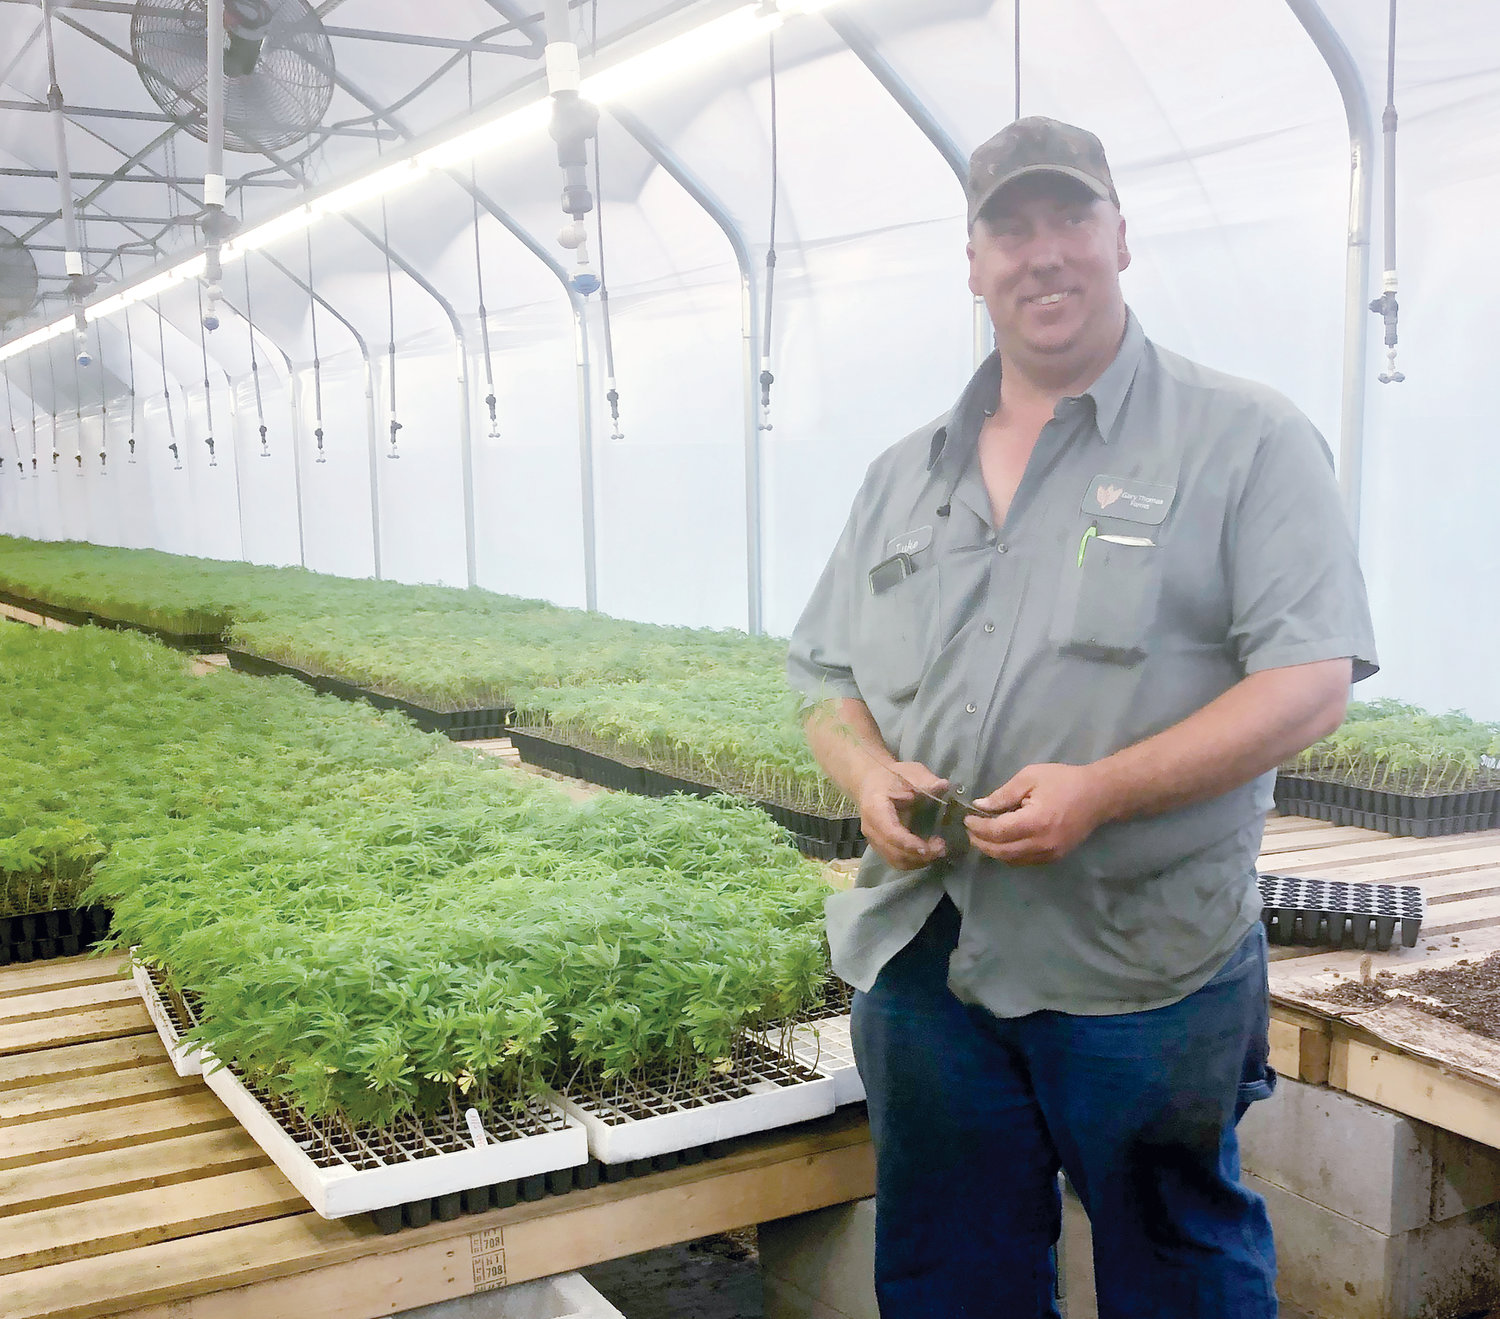 Luke Thomas of Gary Thomas Farms holds a clone in their cloning greenhouse. After purchasing the initial 1,000 clones, they have been able to clone their own and now sell clones to other hemp farmers.